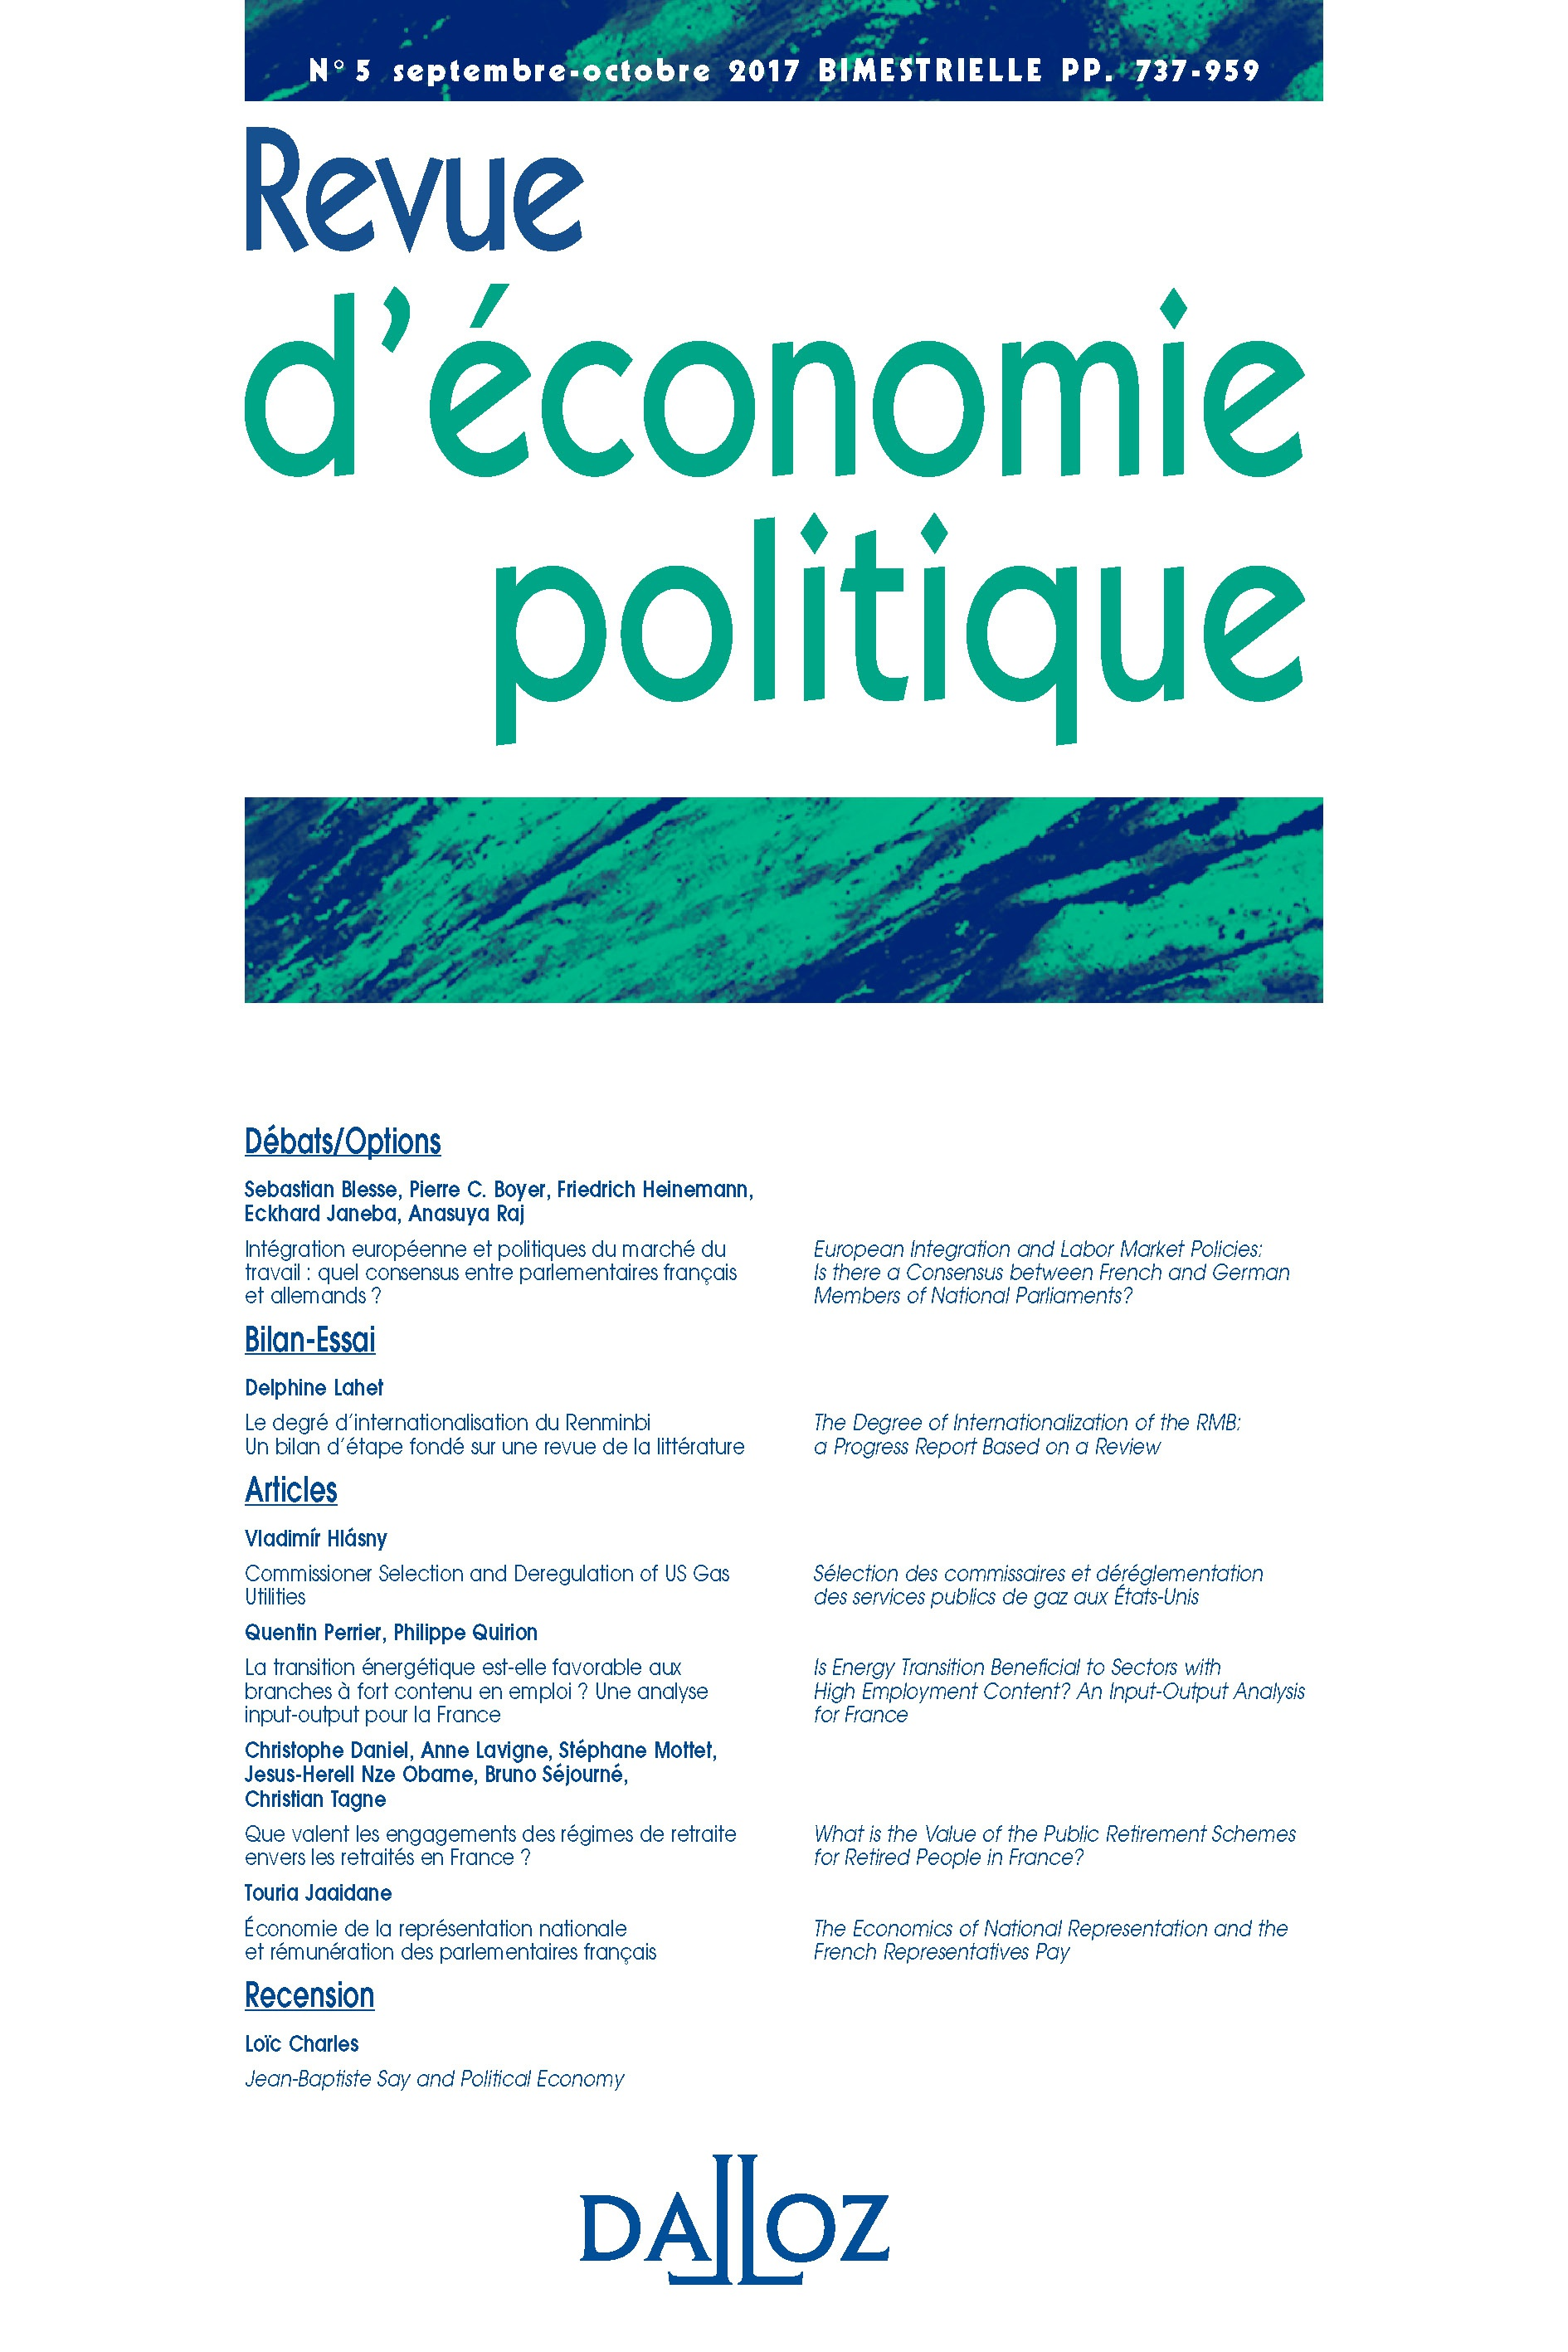 Jean-Baptiste Say and Political Economy | Cairn info